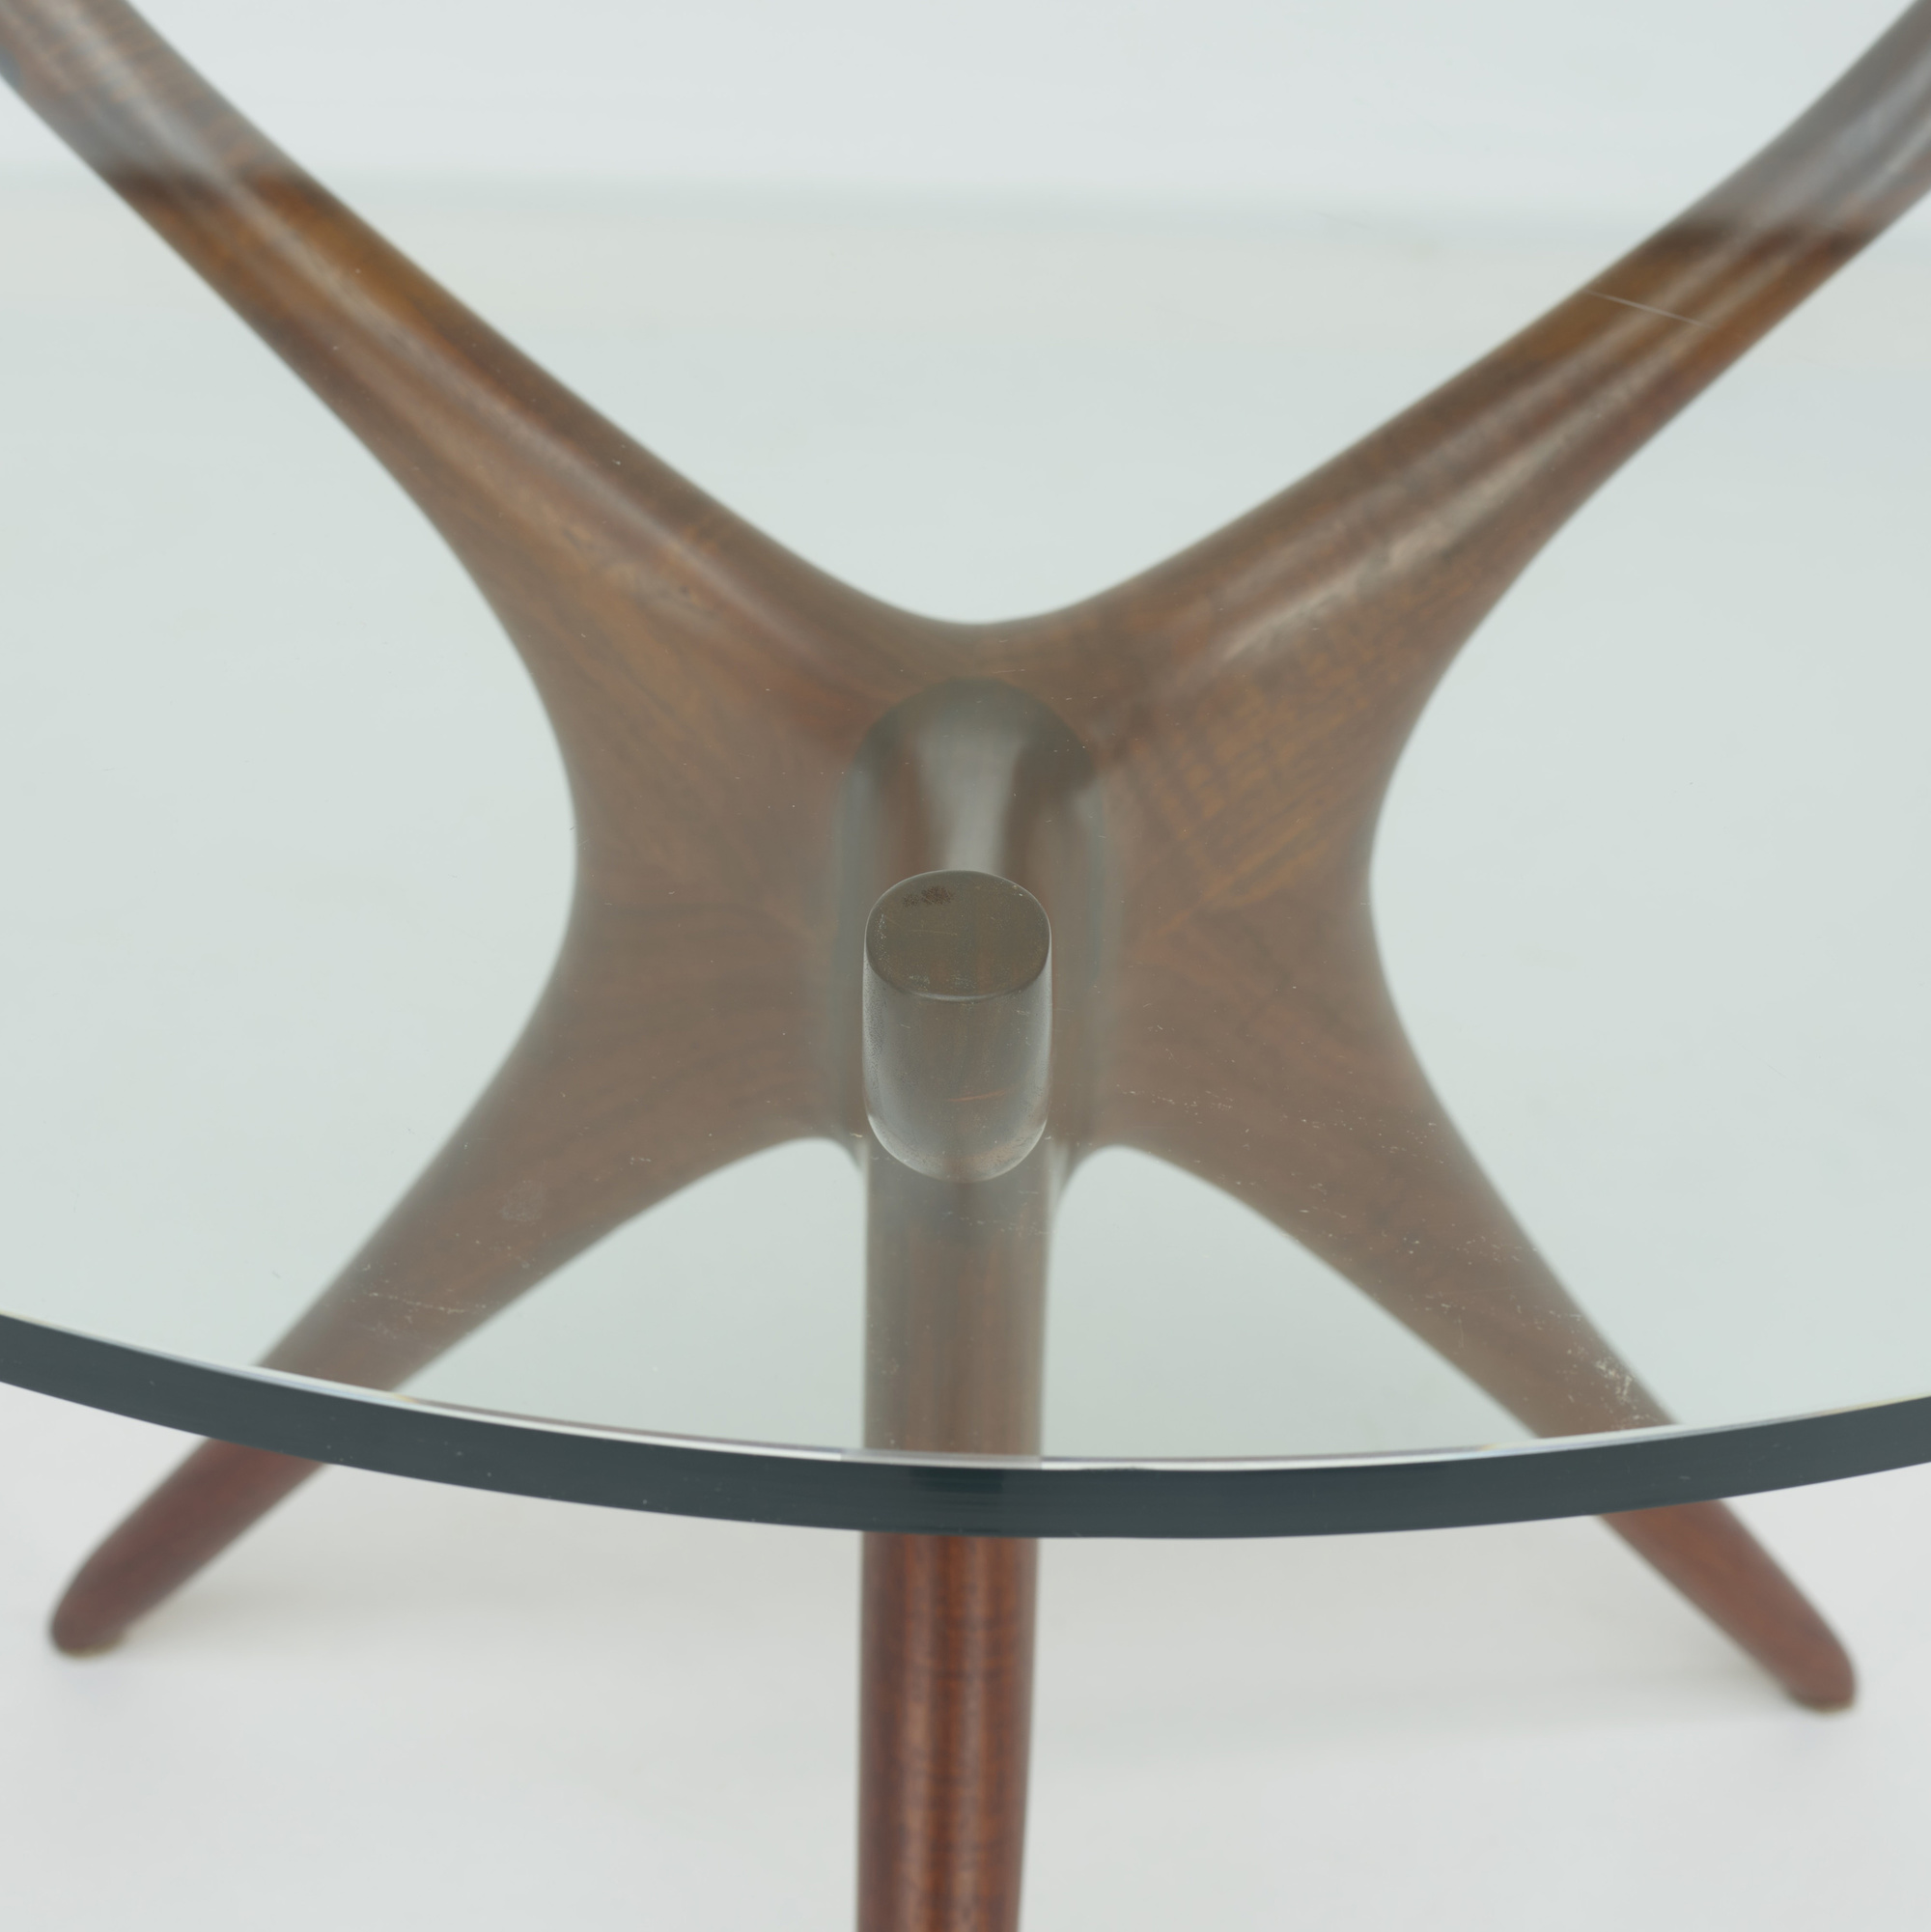 354: Vladimir Kagan / Tri-symmetric dining table (3 of 3)